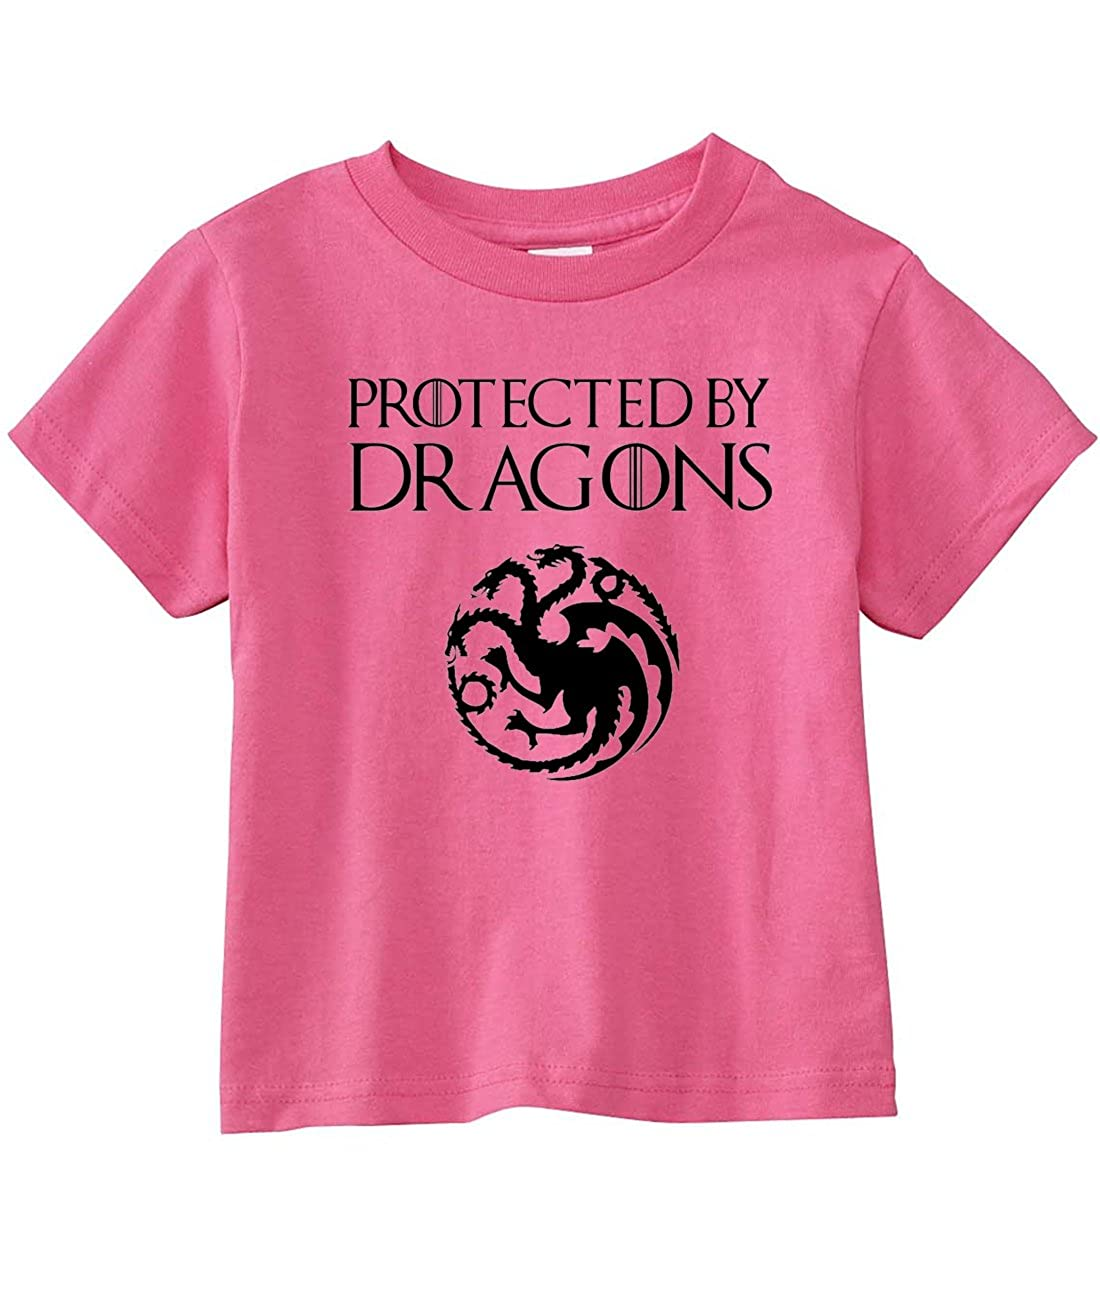 NorthStarTees Game Thrones Toddler Protected Dragons T-Shirt